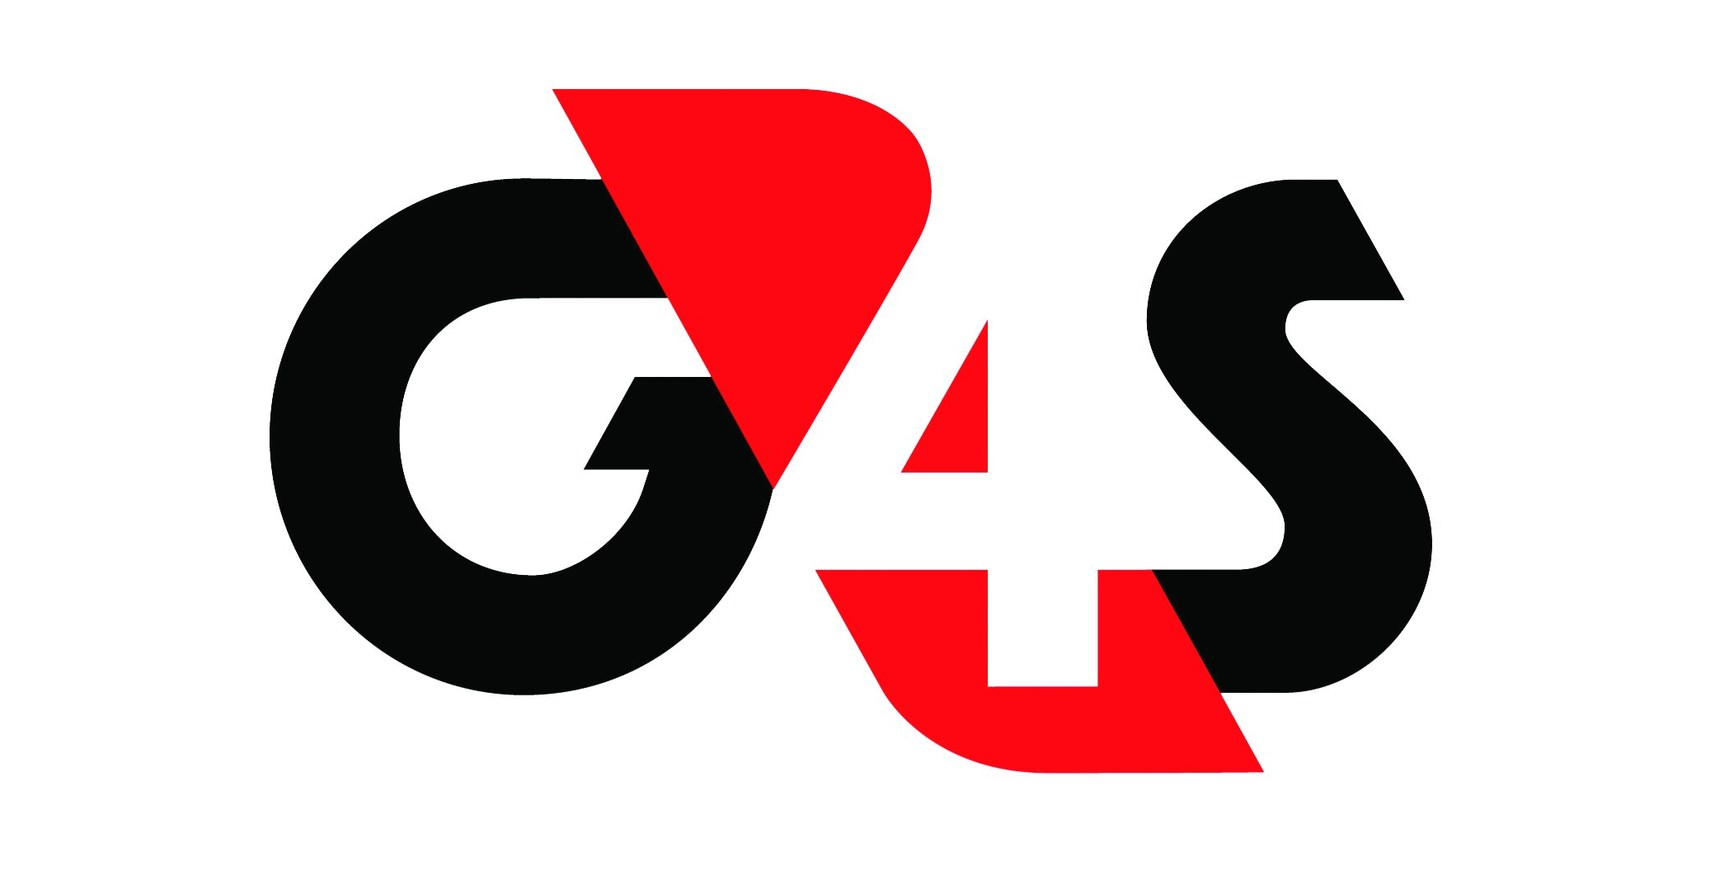 G4S Secure Solutions (USA) Inc.'s logo